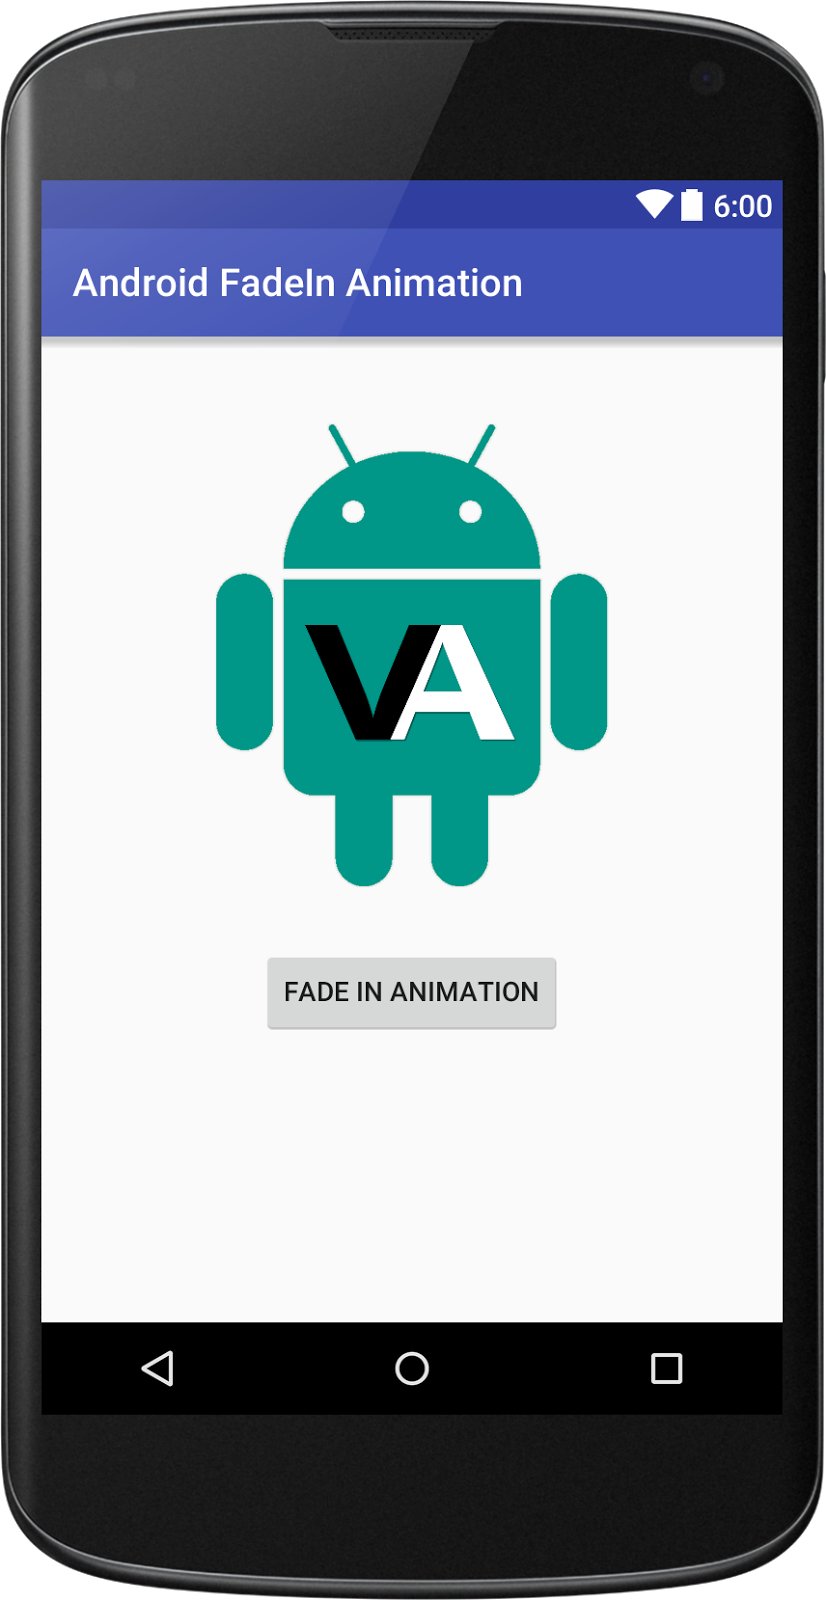 Fade In Animation Example in Android